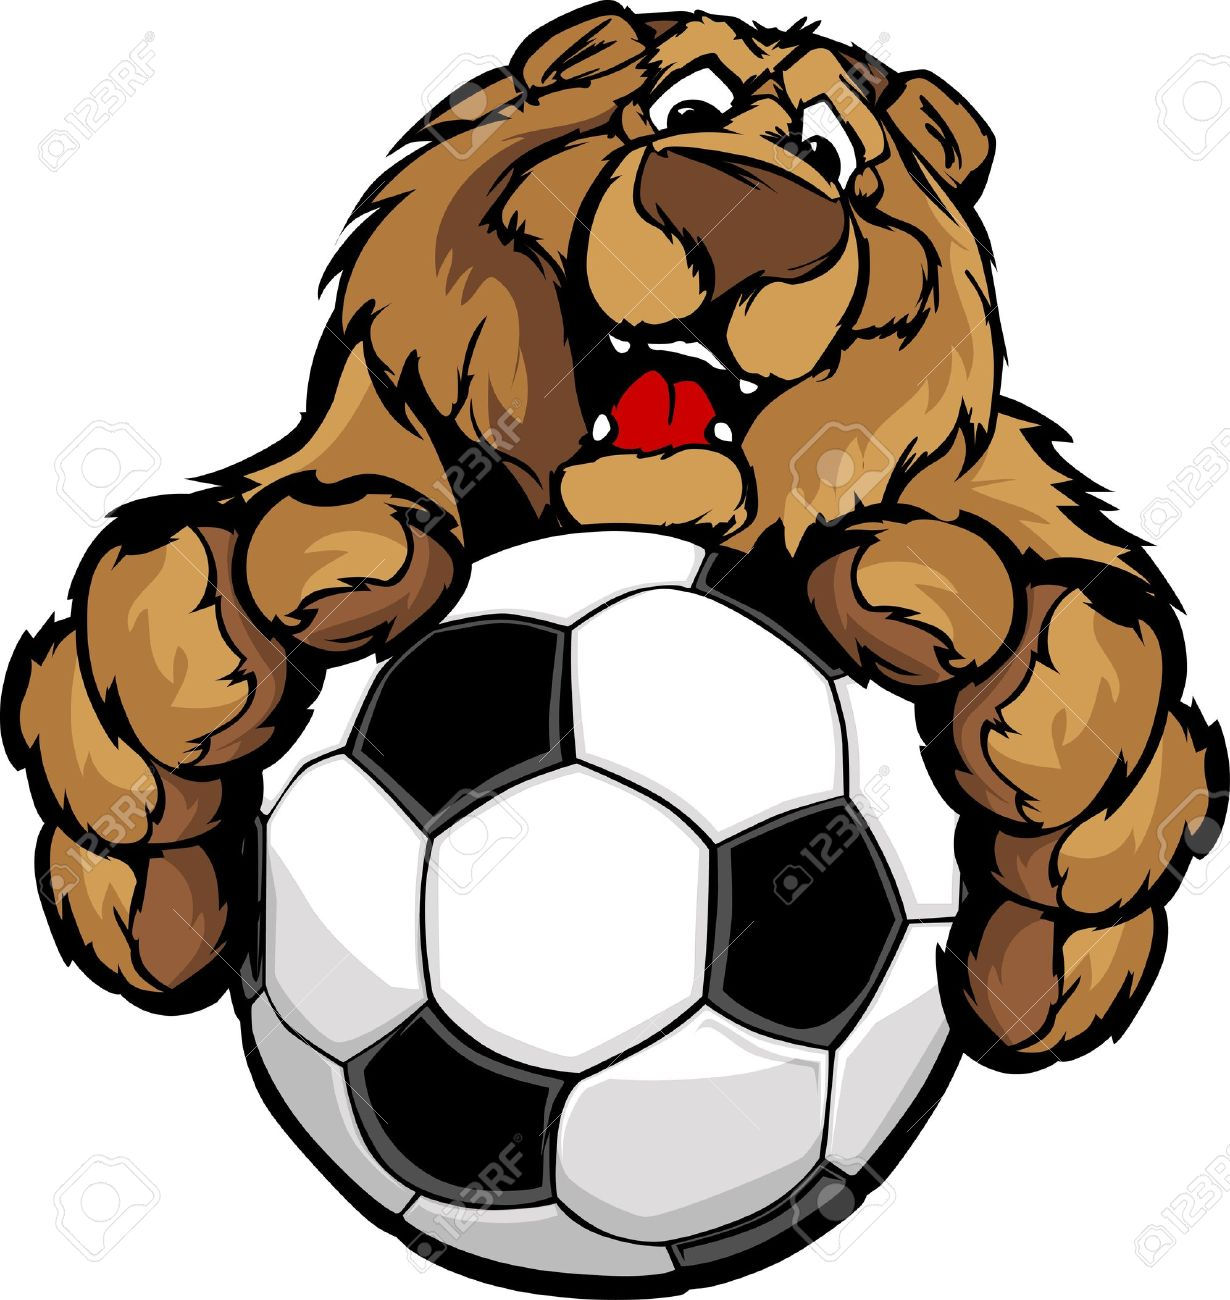 hight resolution of graphic mascot image of a friendly bear with paws on a soccer ball stock vector